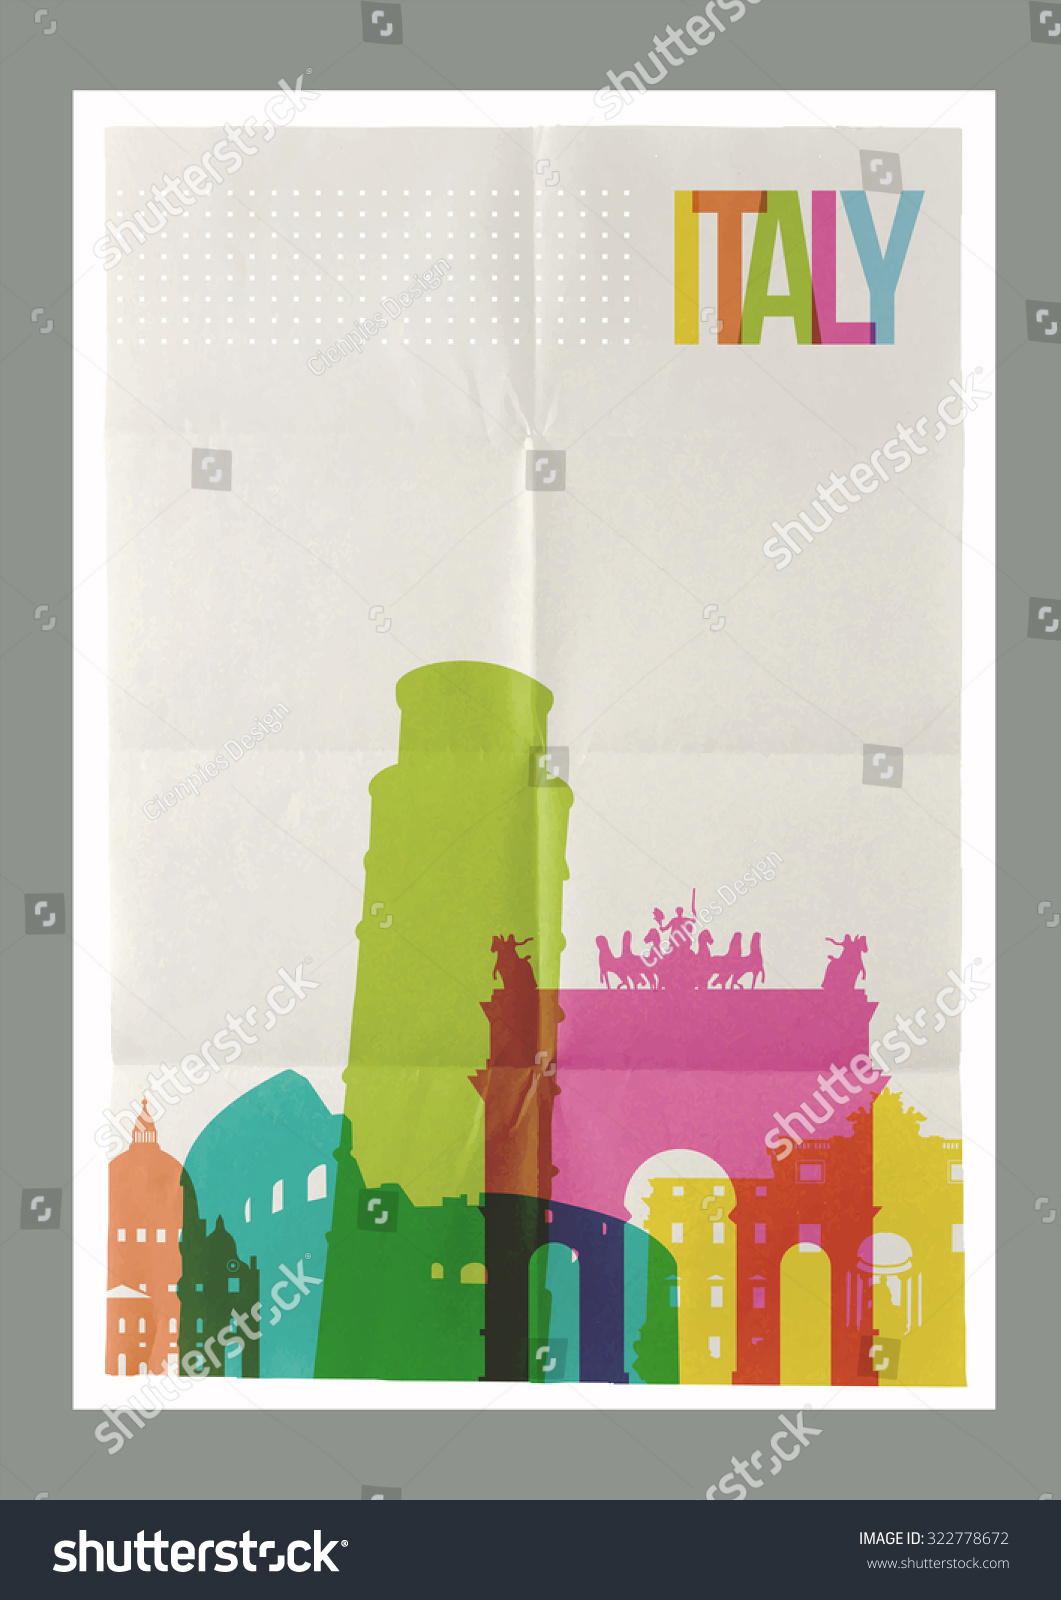 Poster design your own - Travel Italy Famous Landmarks Skyline On Vintage Paper Sheet Poster Design Background Create Your Own